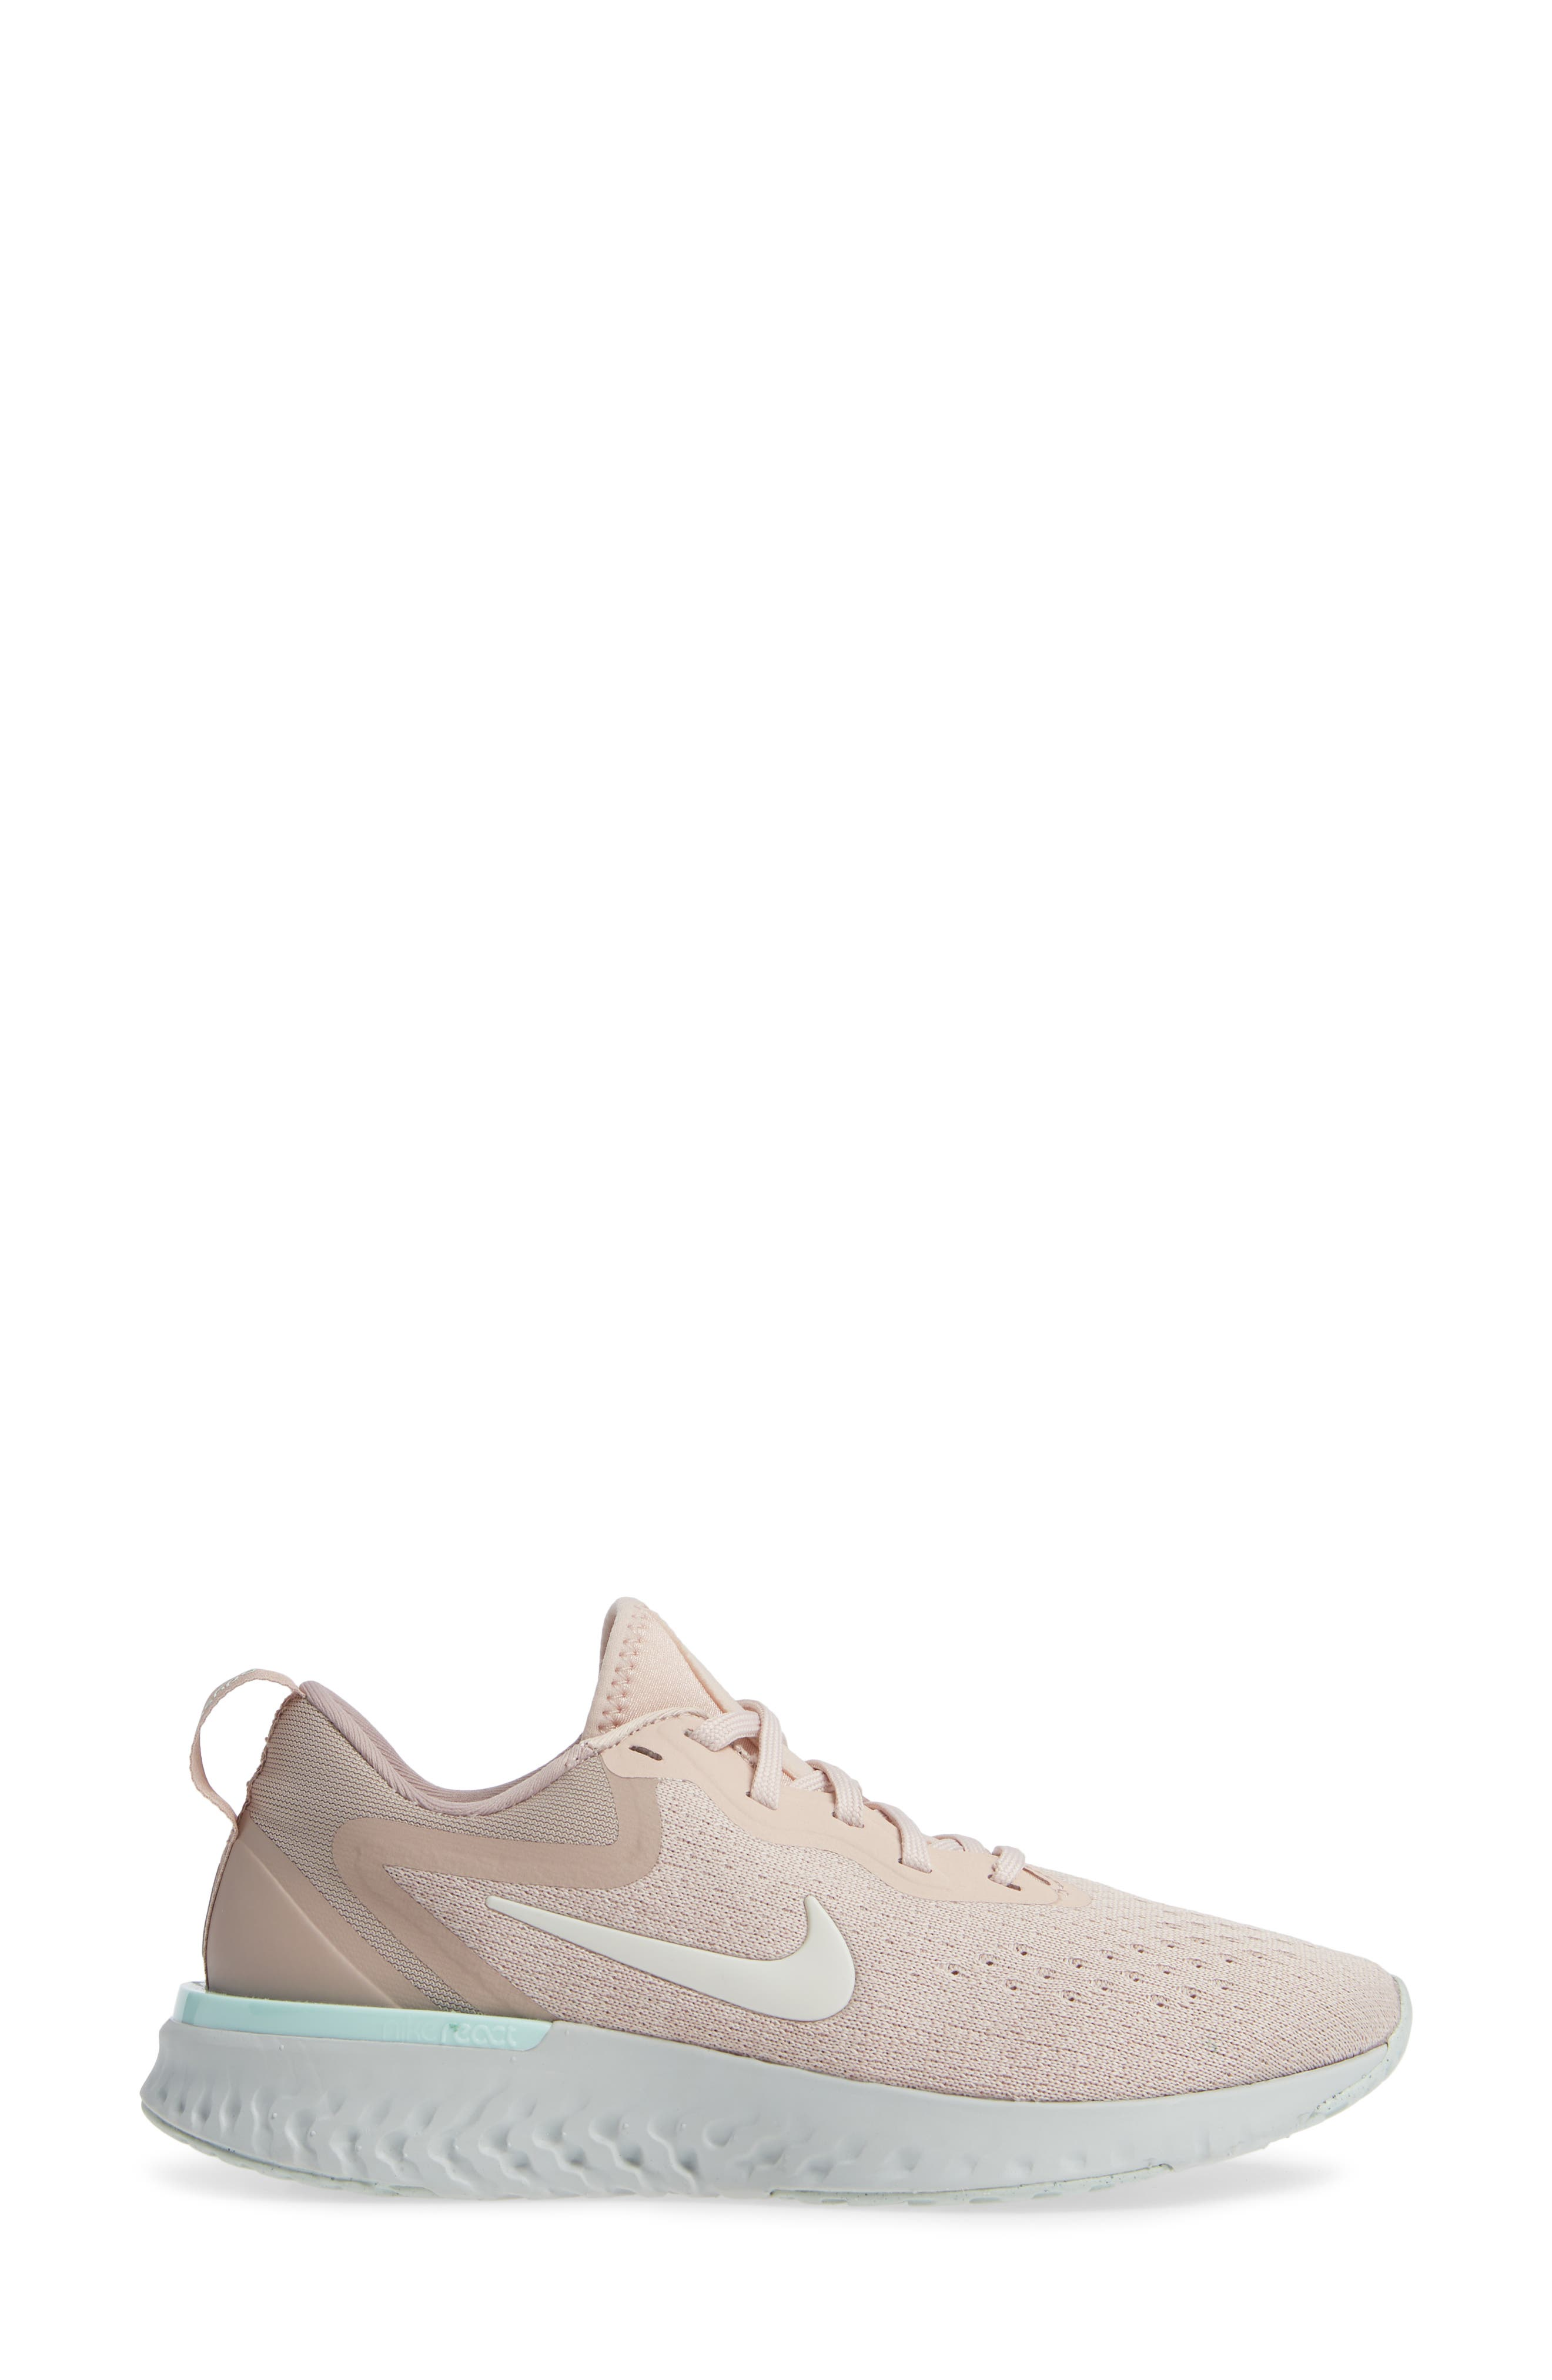 Odyssey React Running Shoe,                             Alternate thumbnail 3, color,                             BEIGE/ PHANTOM-DIFFUSED TAUPE